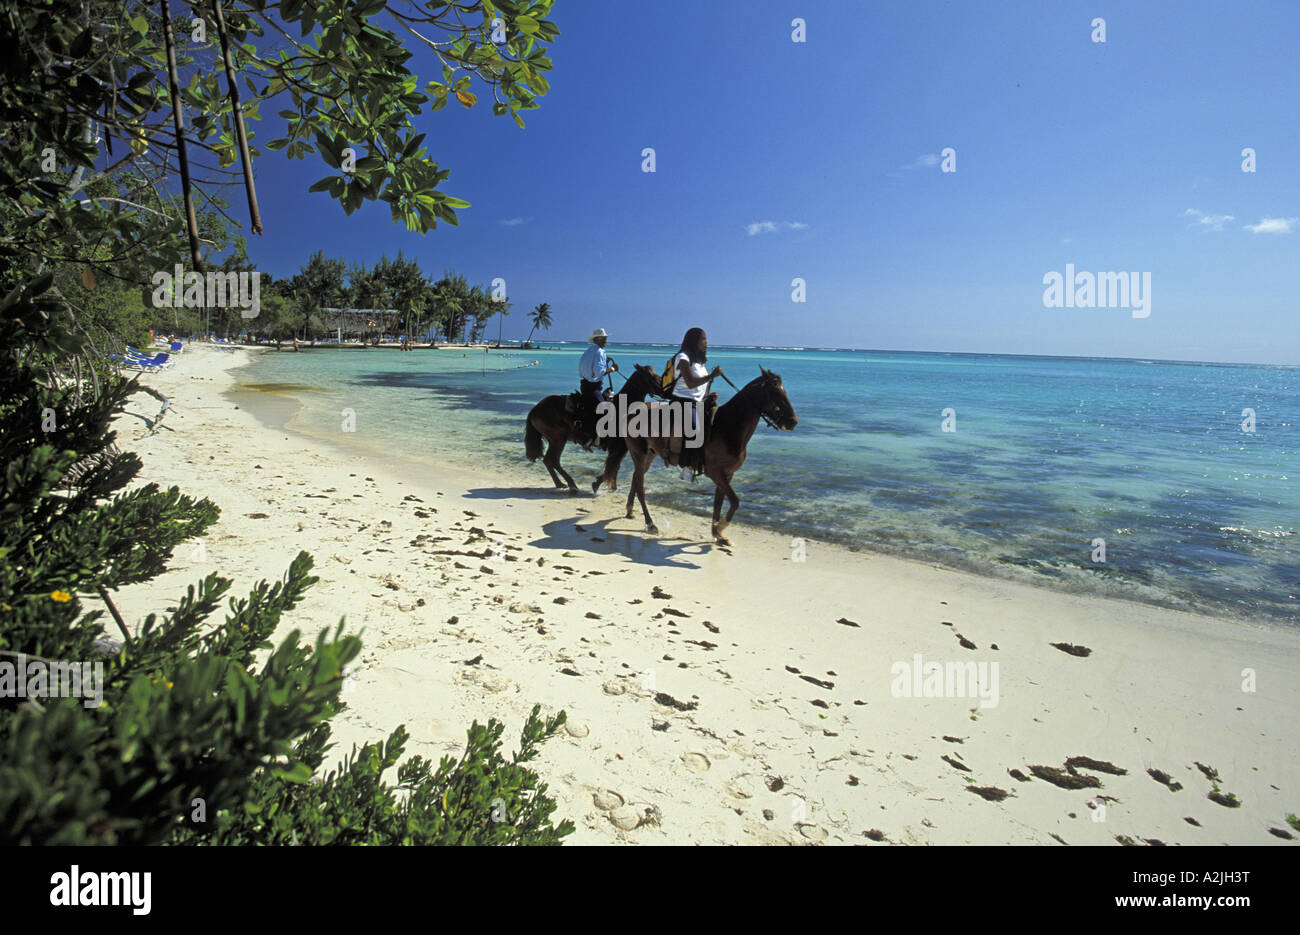 horseback-riders-on-the-beach-at-the-pun